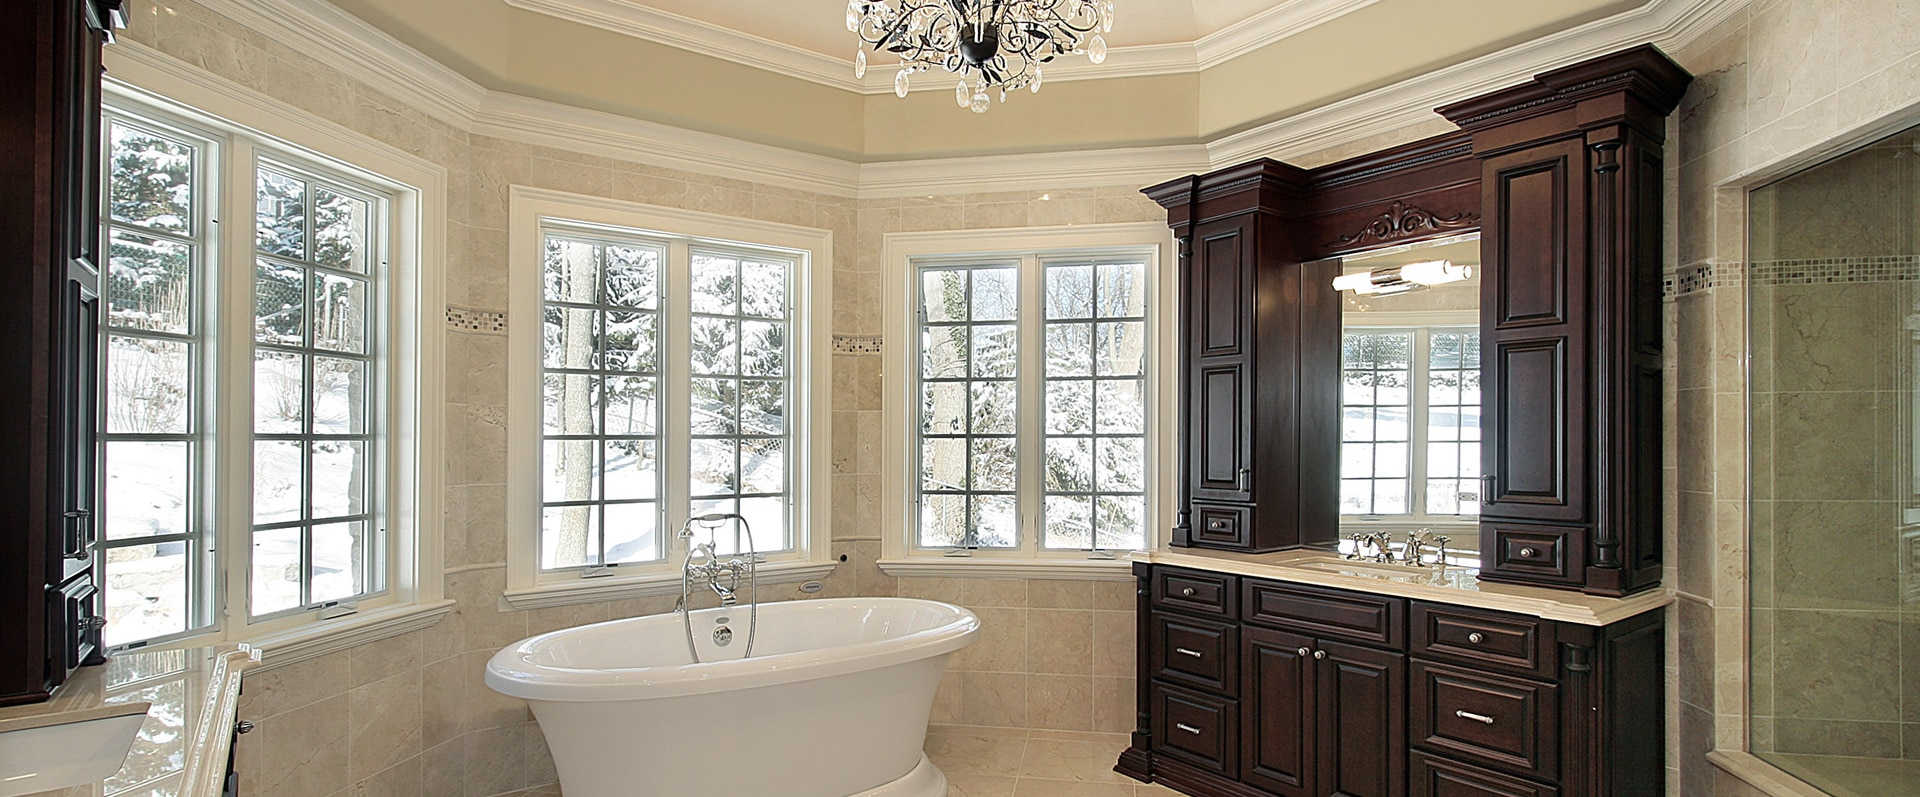 Bathroom with stand alone tub